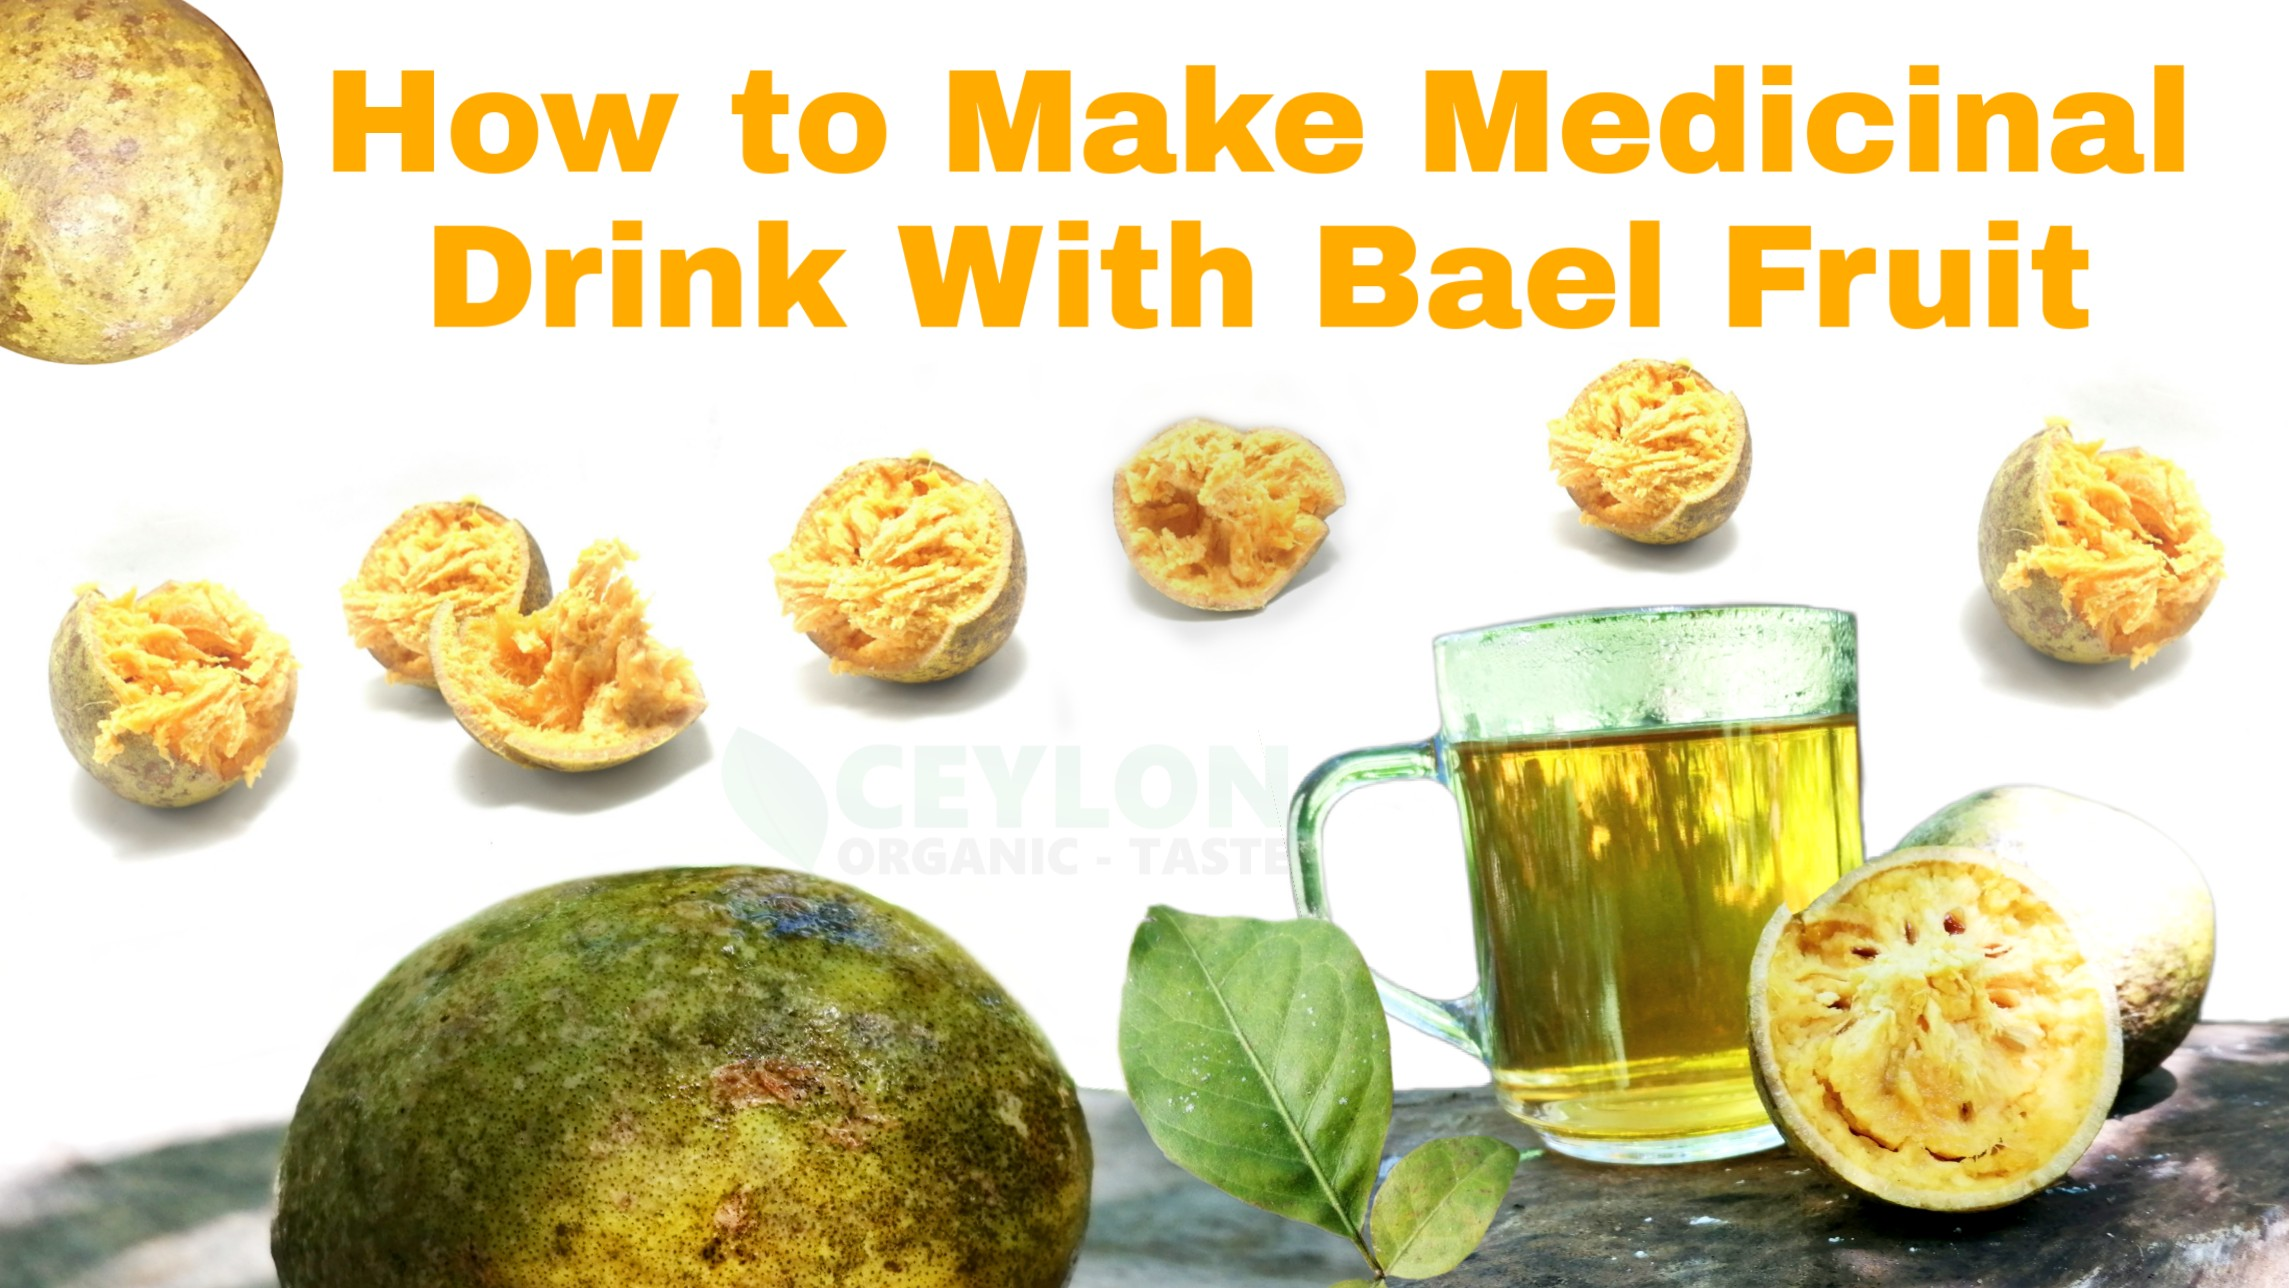 How to make a medicinal drink with bael fruit